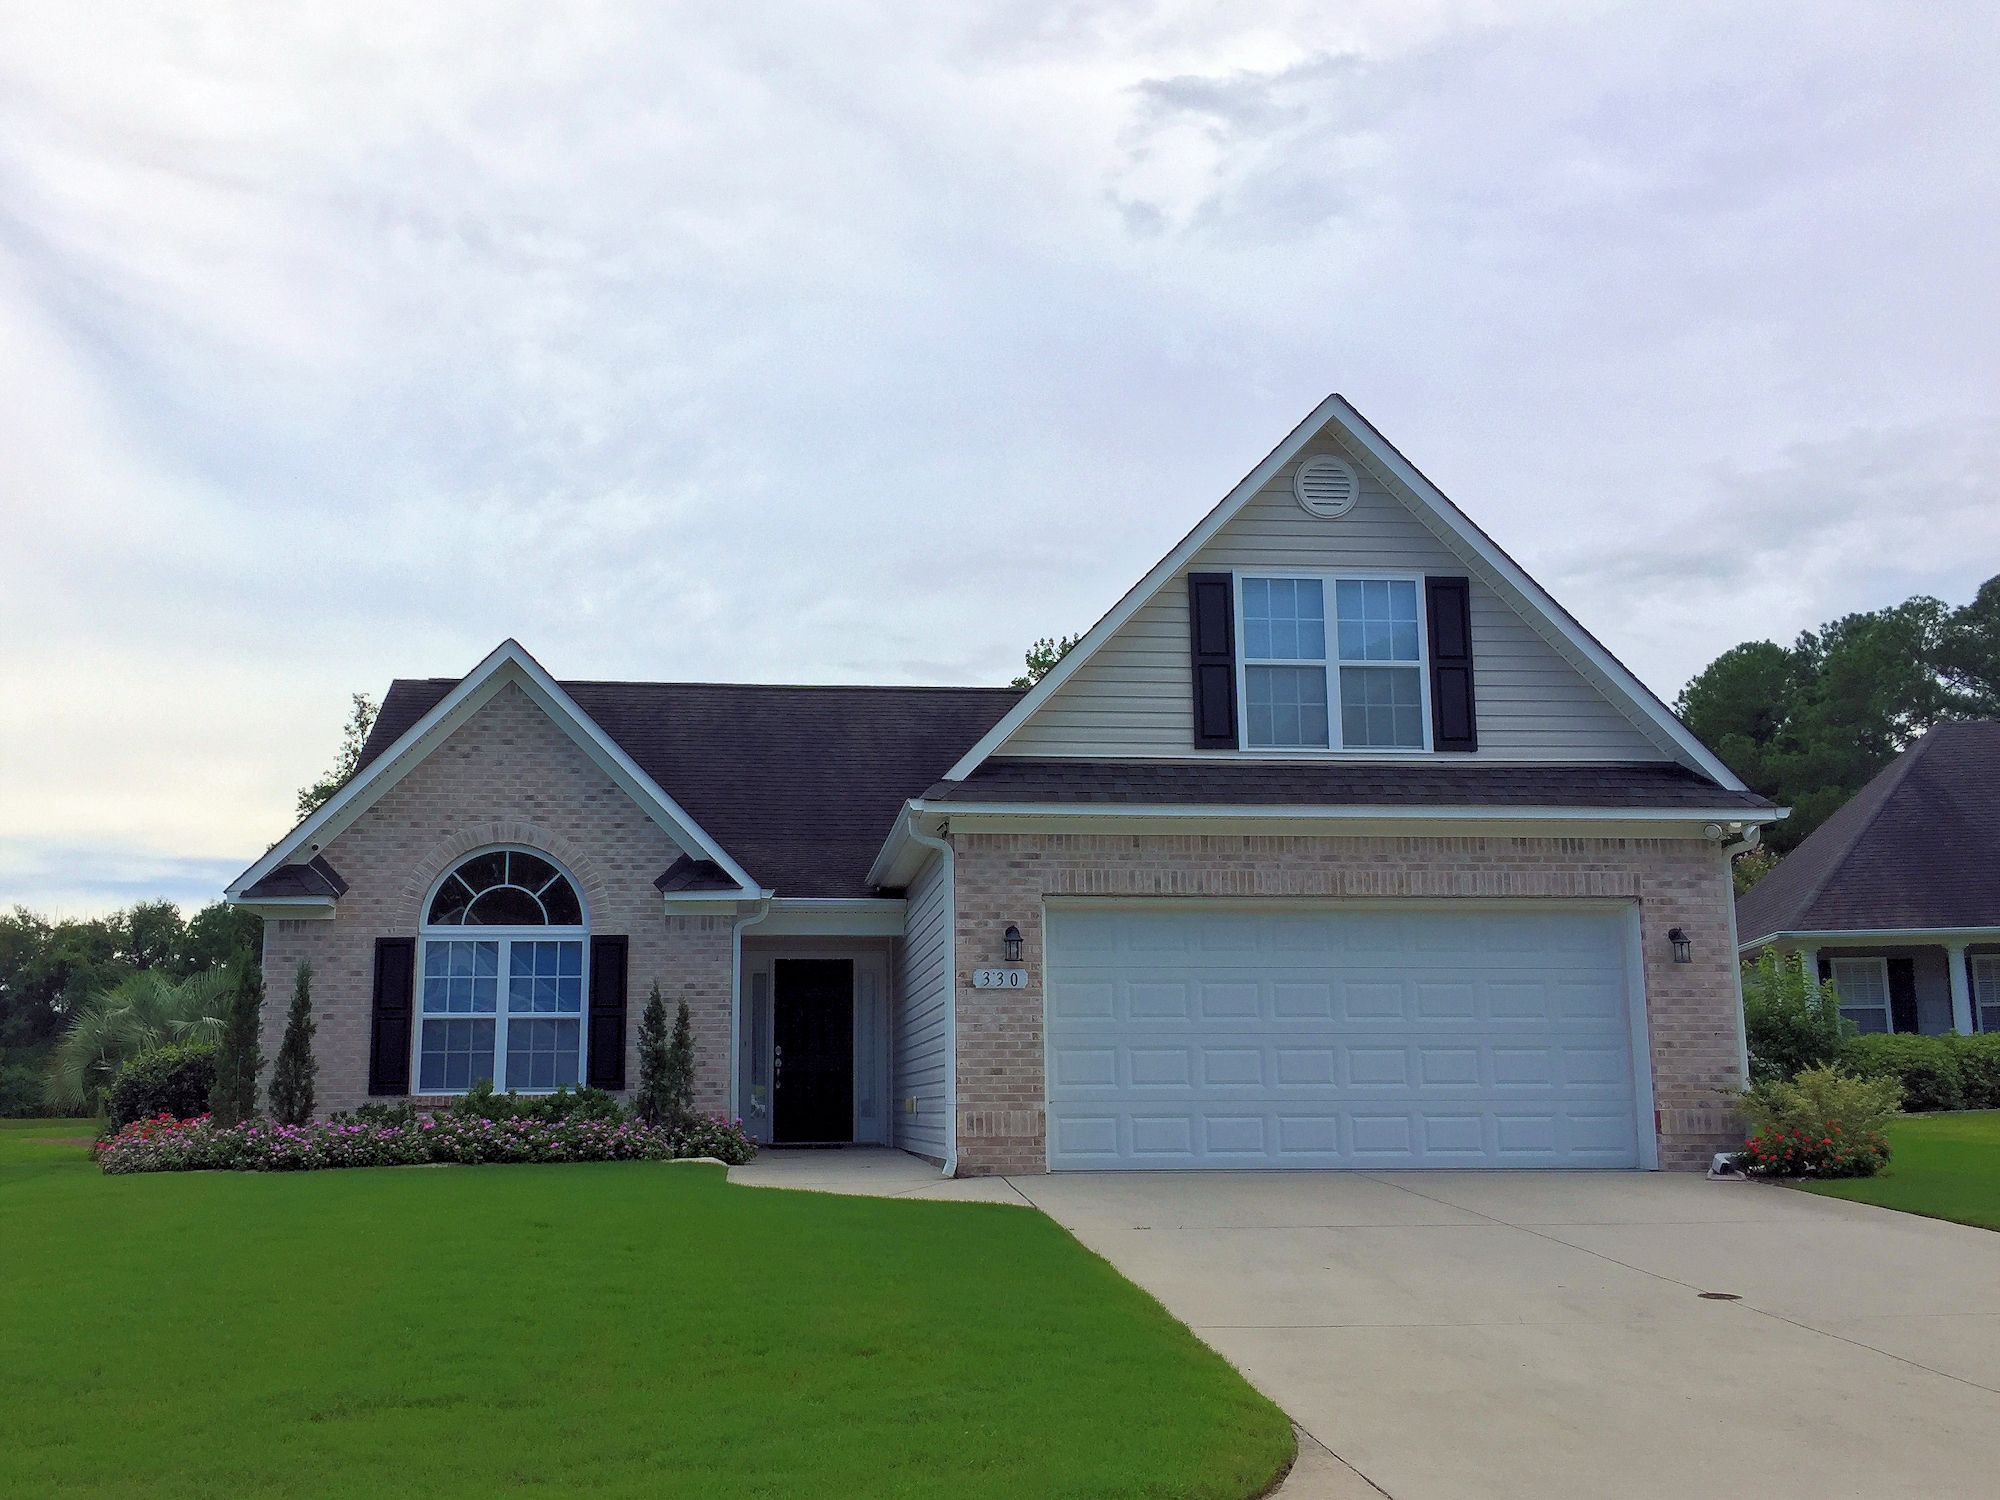 Plantation landing homes for sale in wilmington nc for House landing